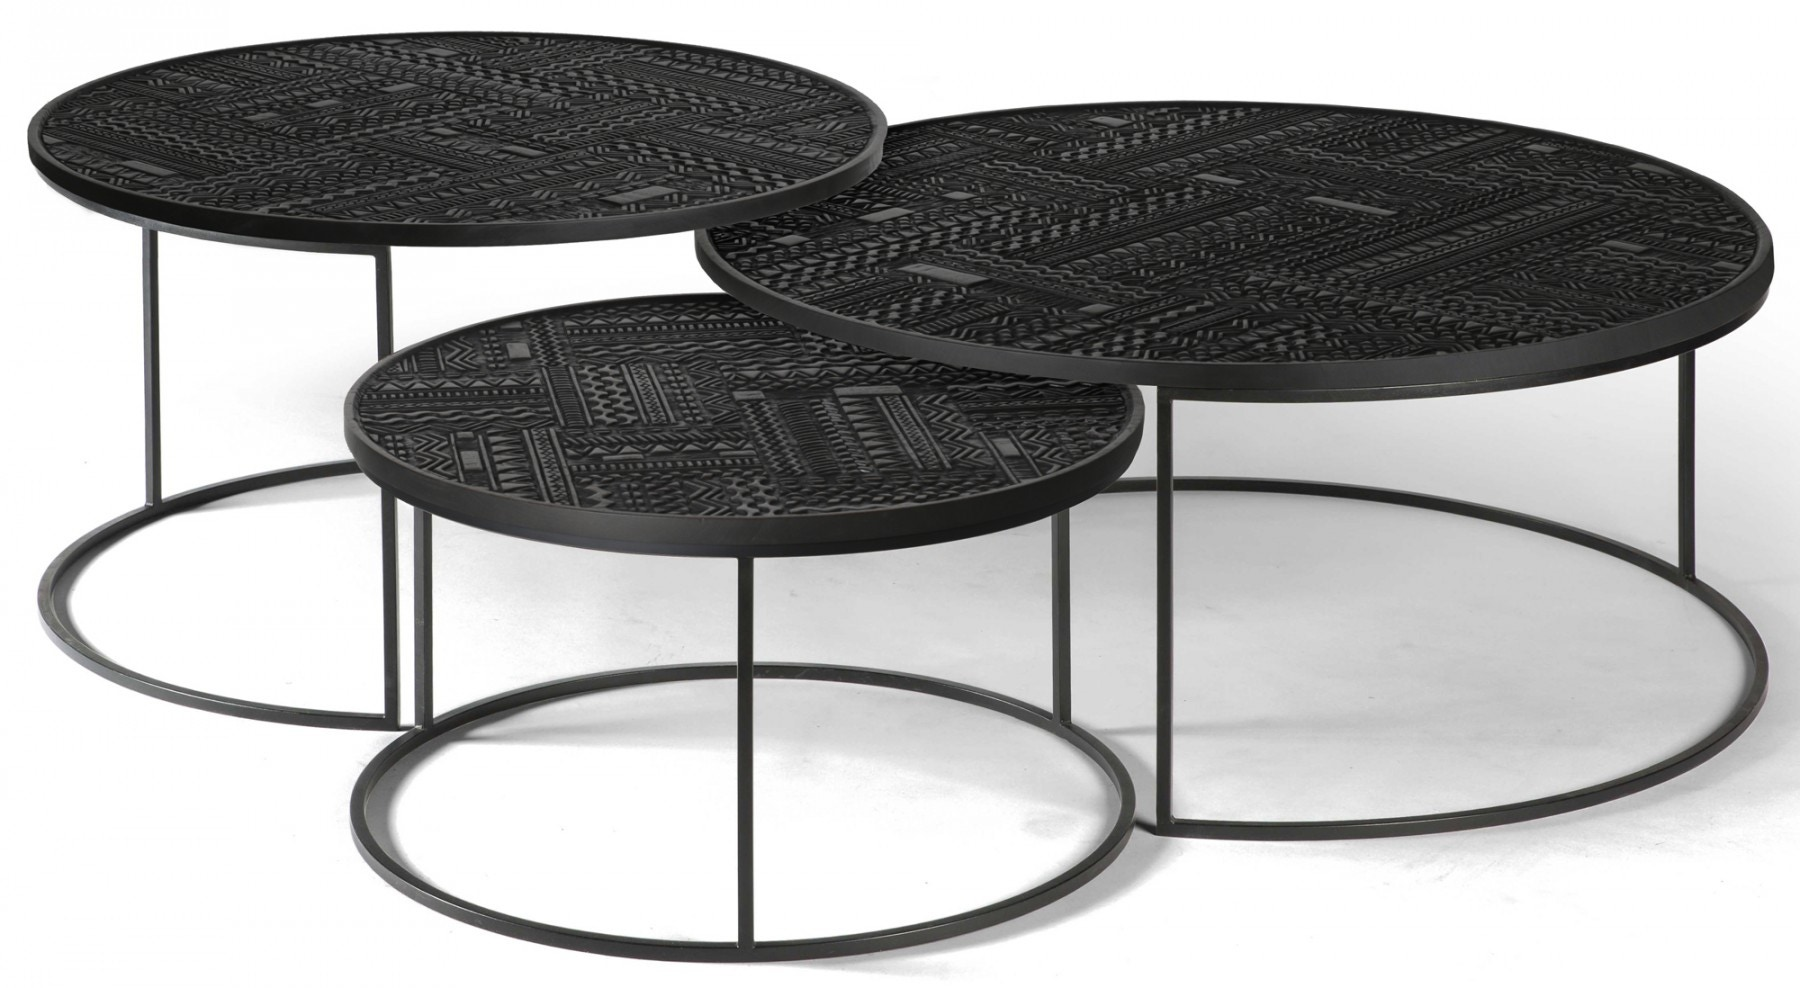 Picture of: Ethnicraft Teak Tabwa Round Nesting Coffee Table Set Of 3